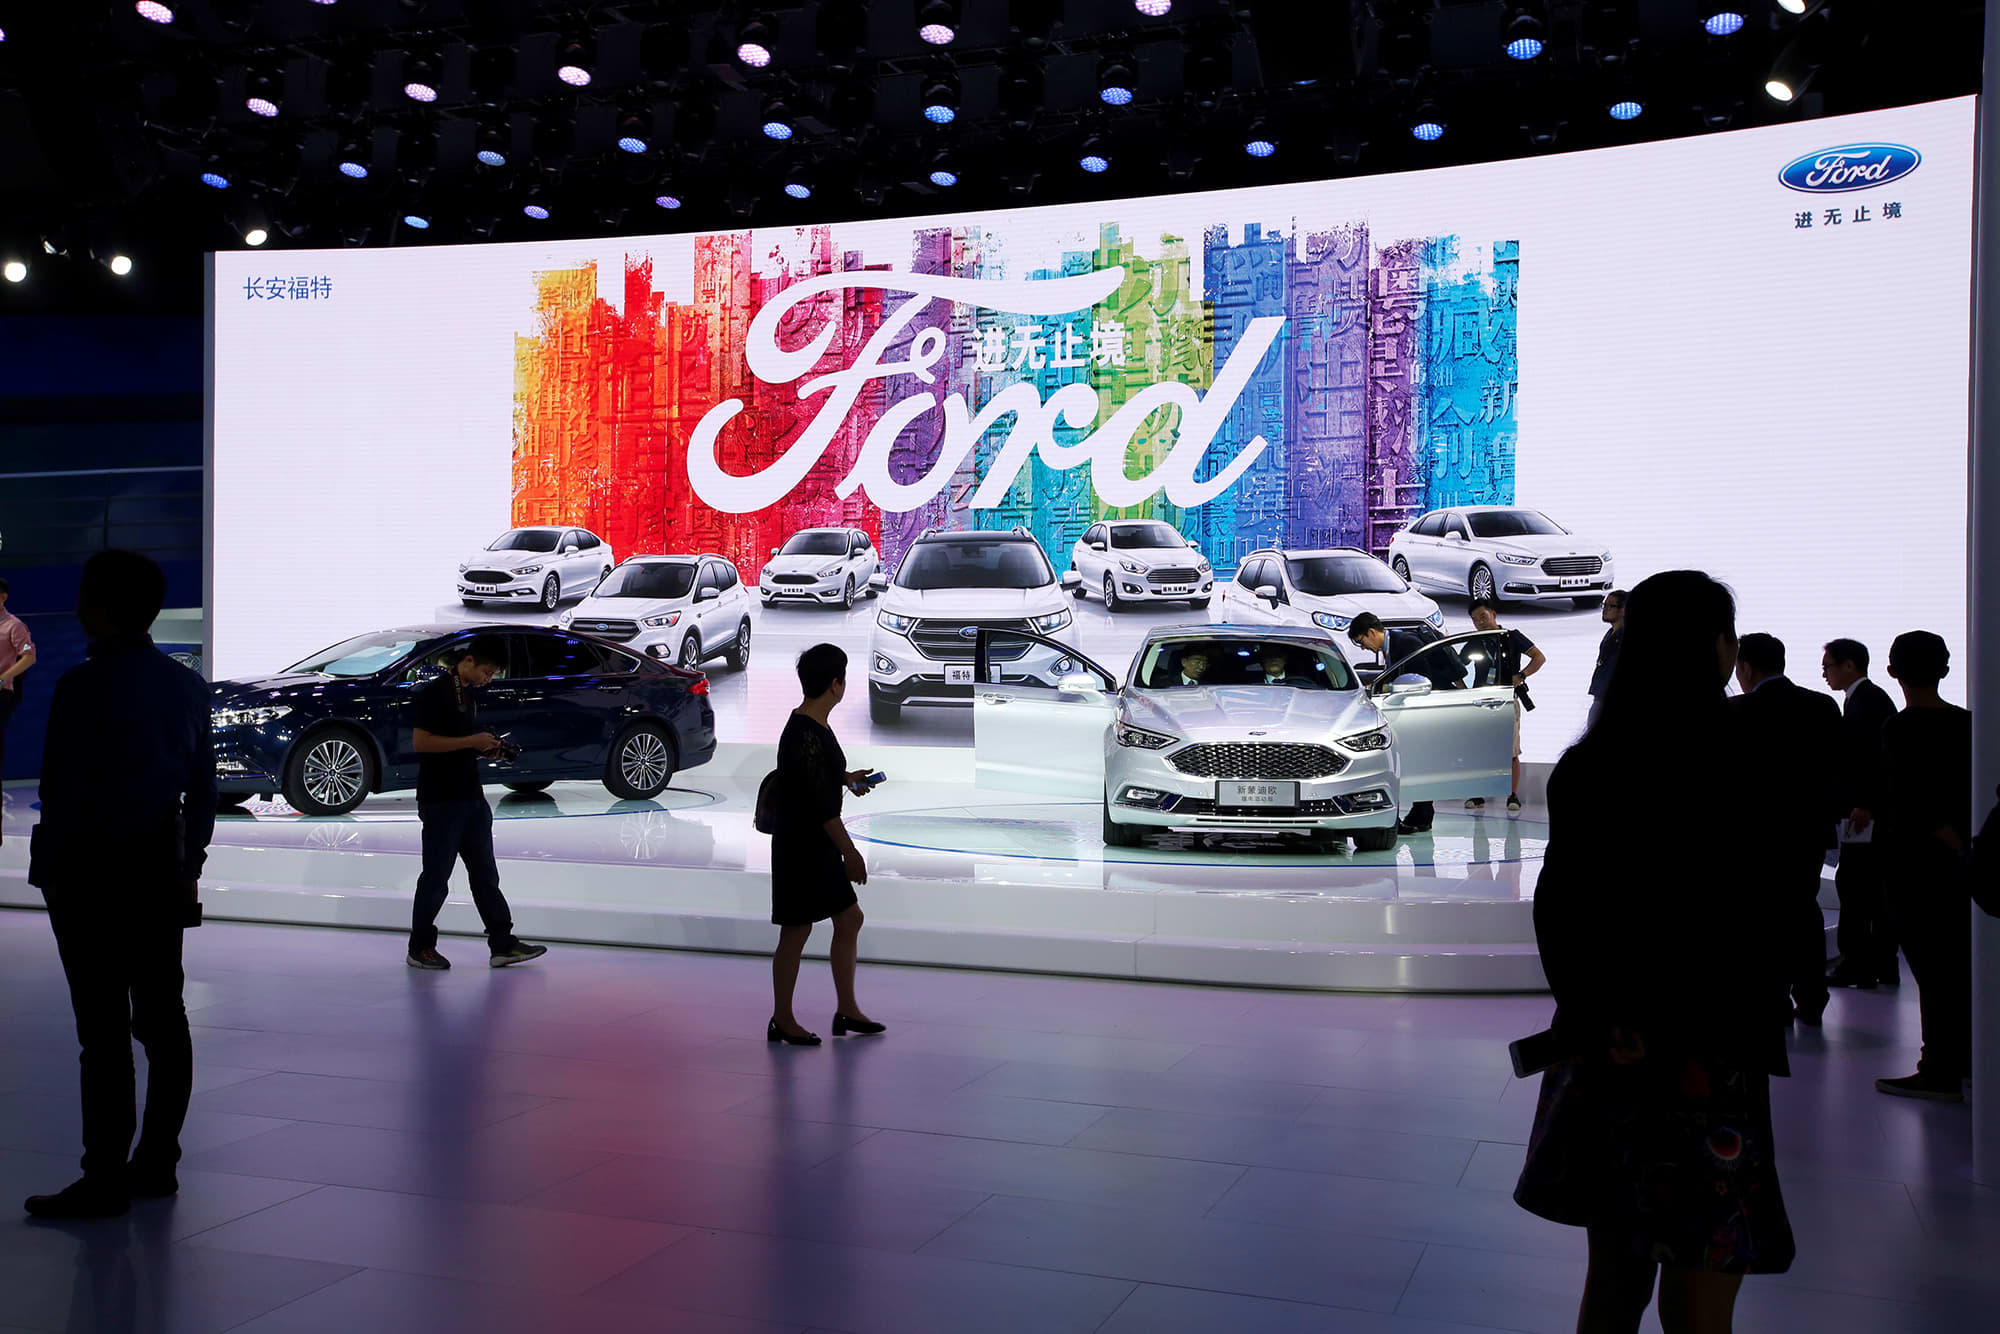 Visitors look at Ford models at Auto Guangzhou in Guangzhou, China November 17, 2017.